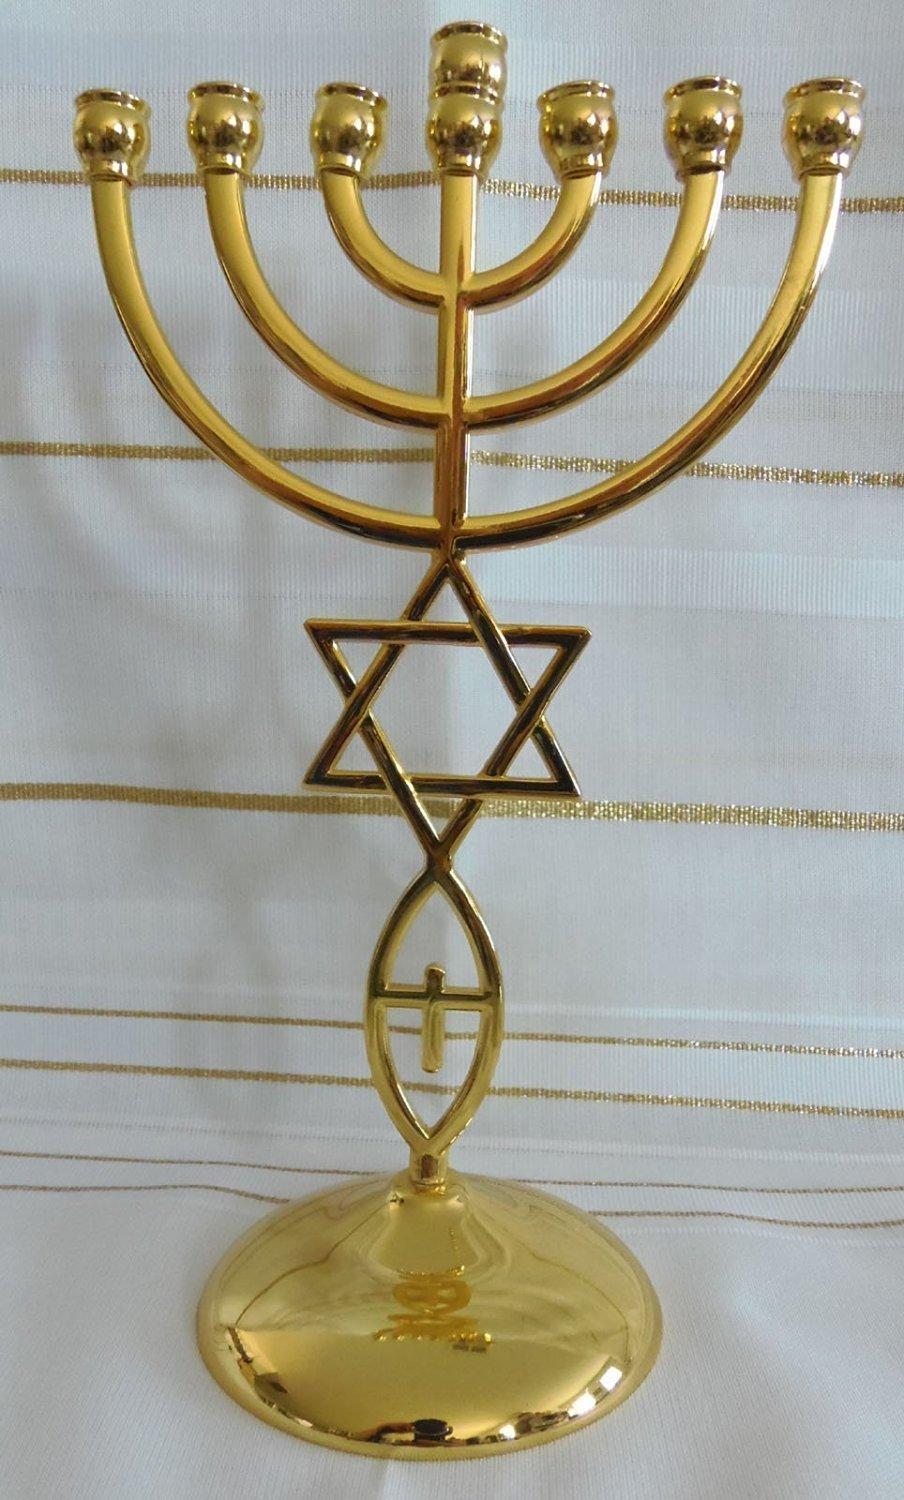 Jewish Messianic Temple Menorah 8.5 inches Tall by Bethlehem Gifts TM (Gold) 並行輸入品